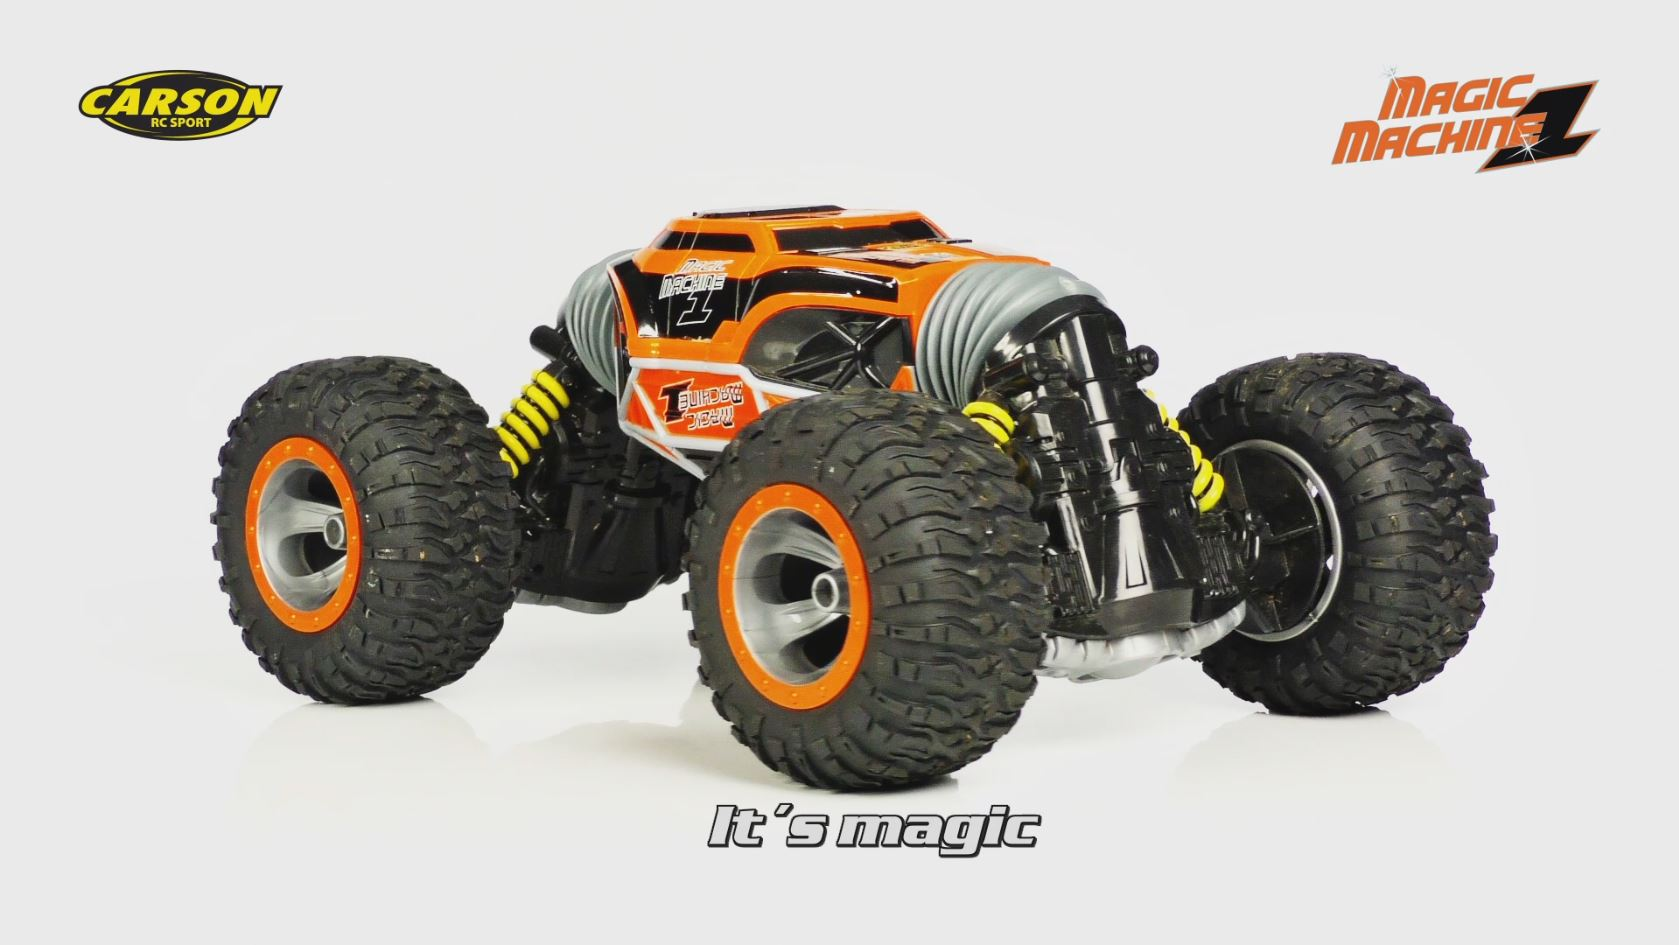 1:8 Magic Machine 2.4GHz 100% RTR